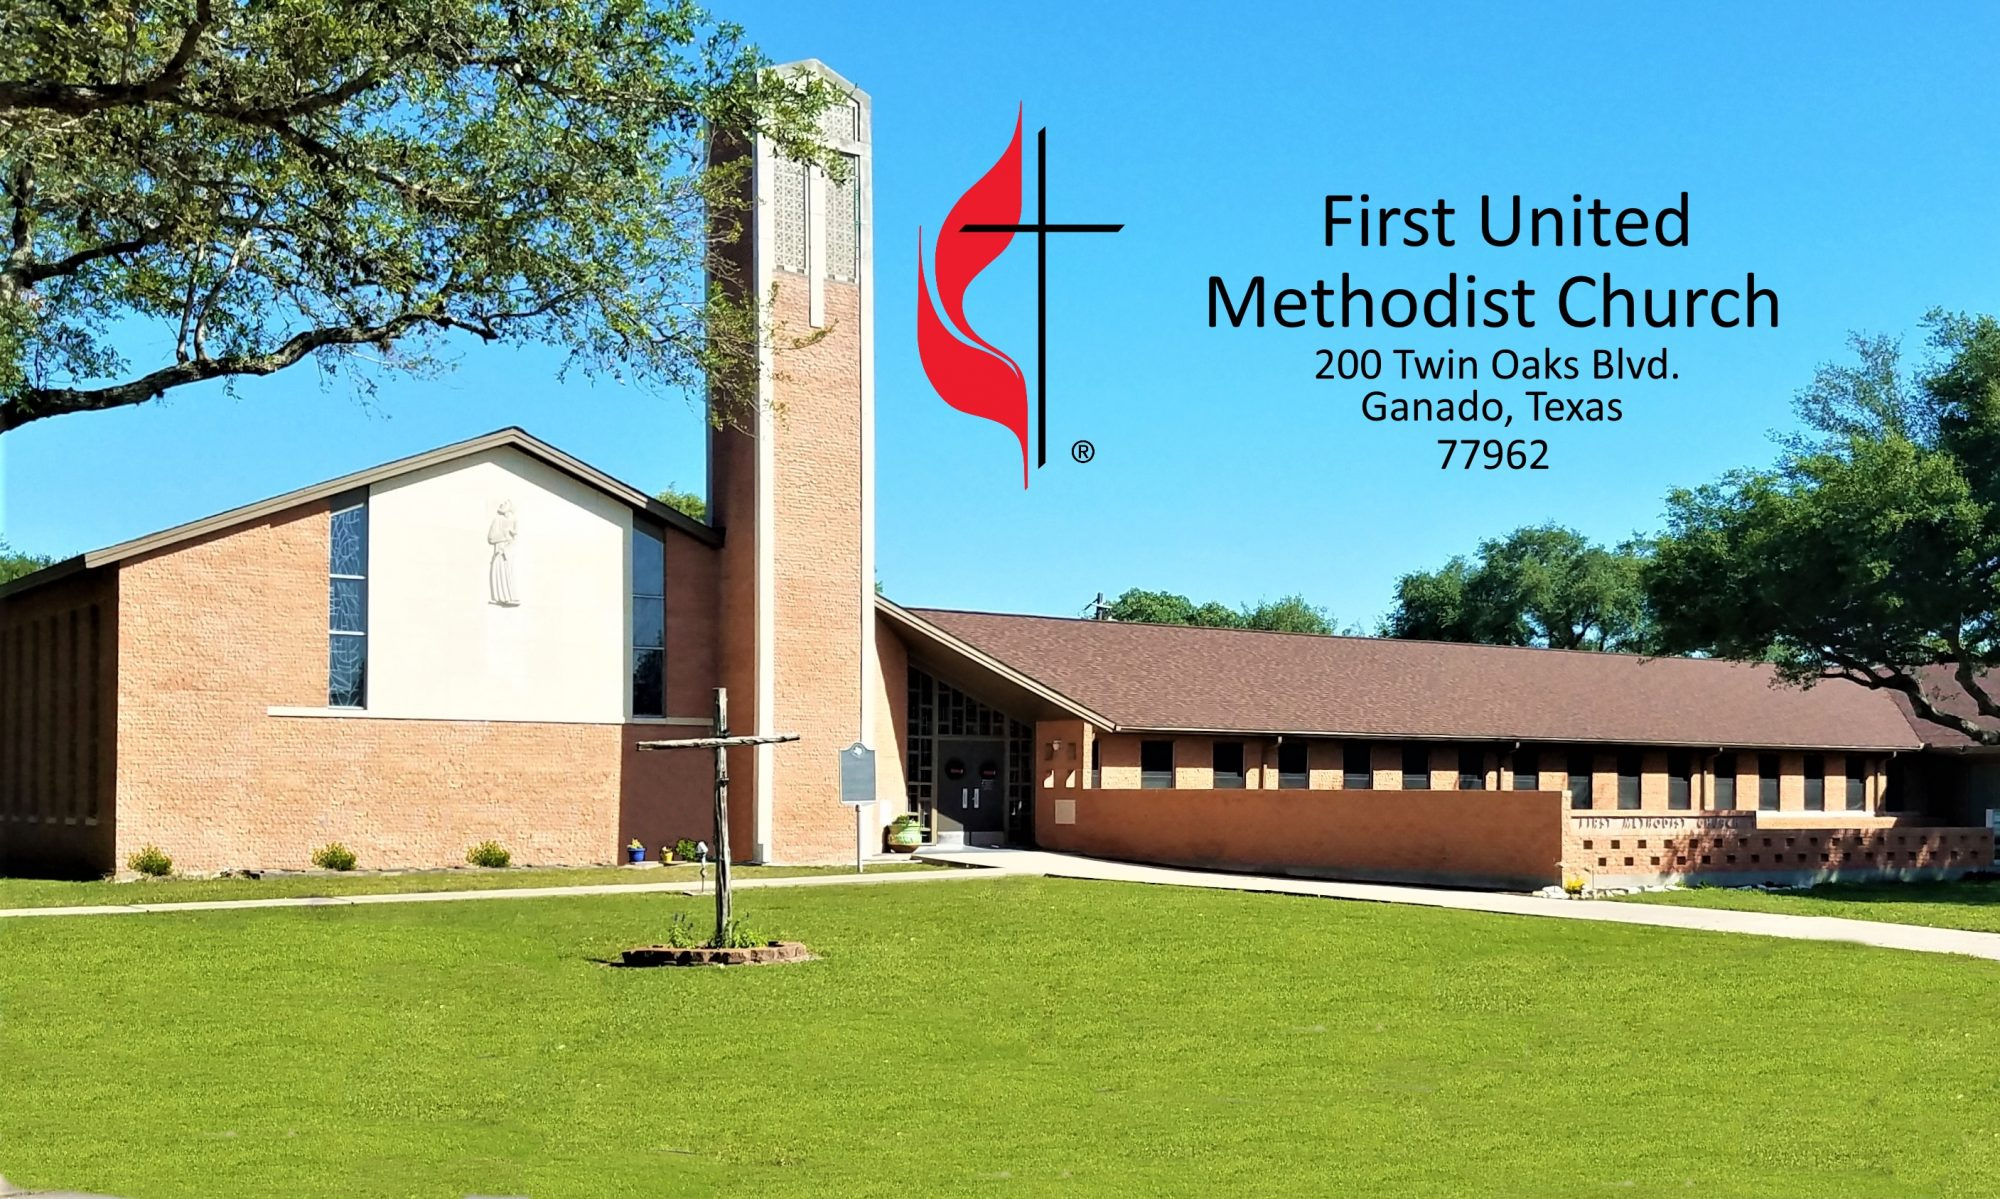 Ganado First United Methodist Church